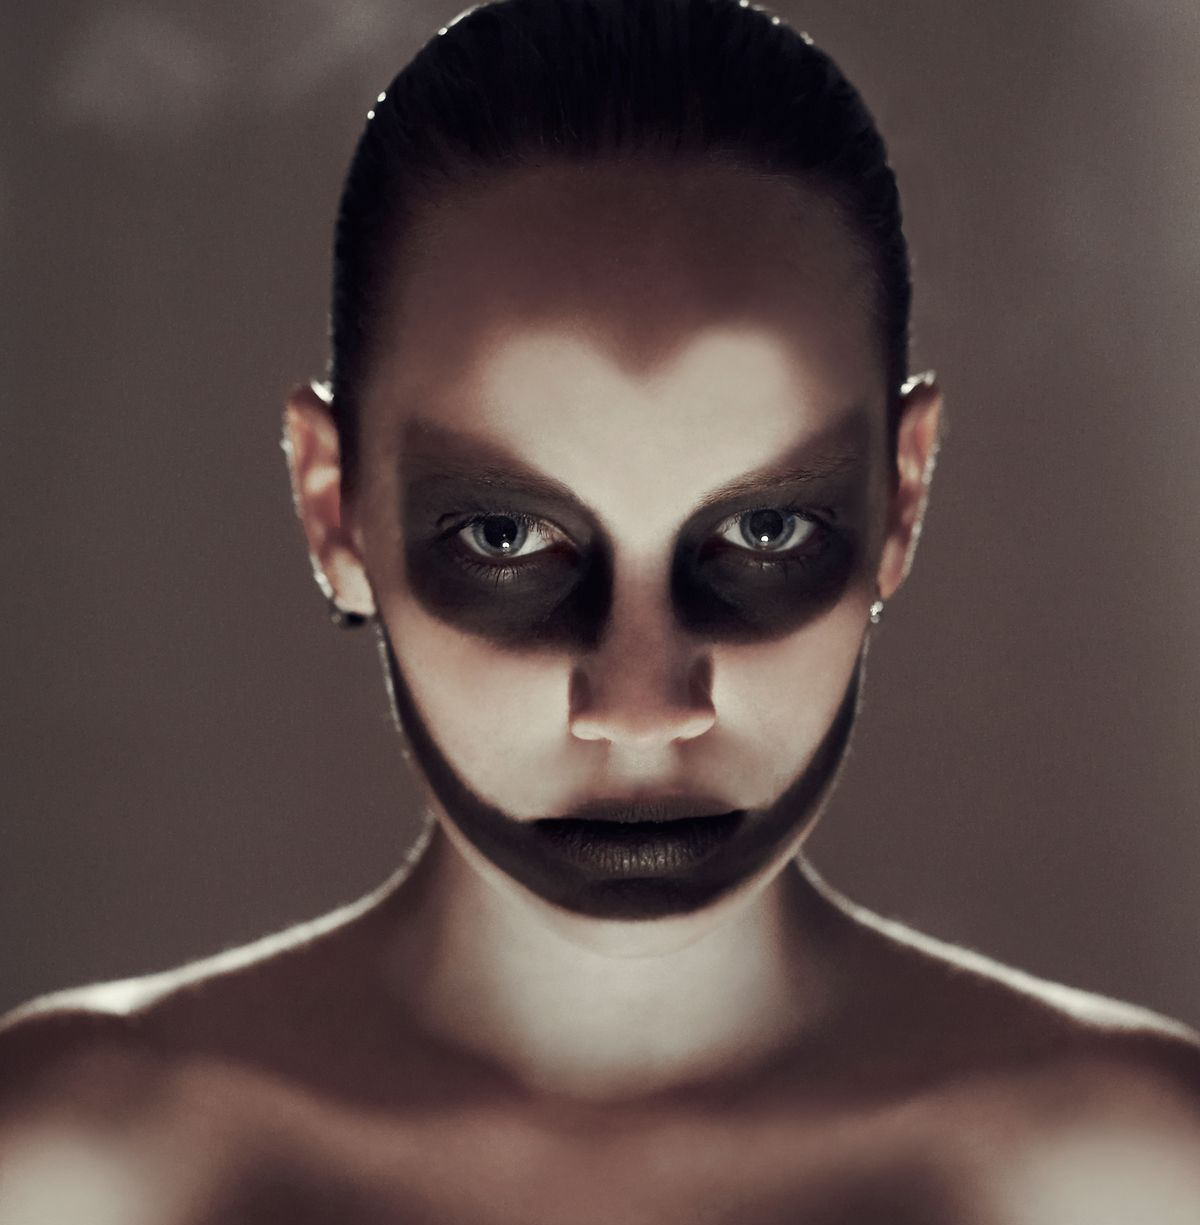 Der Black-Swan-Look (ddp images)